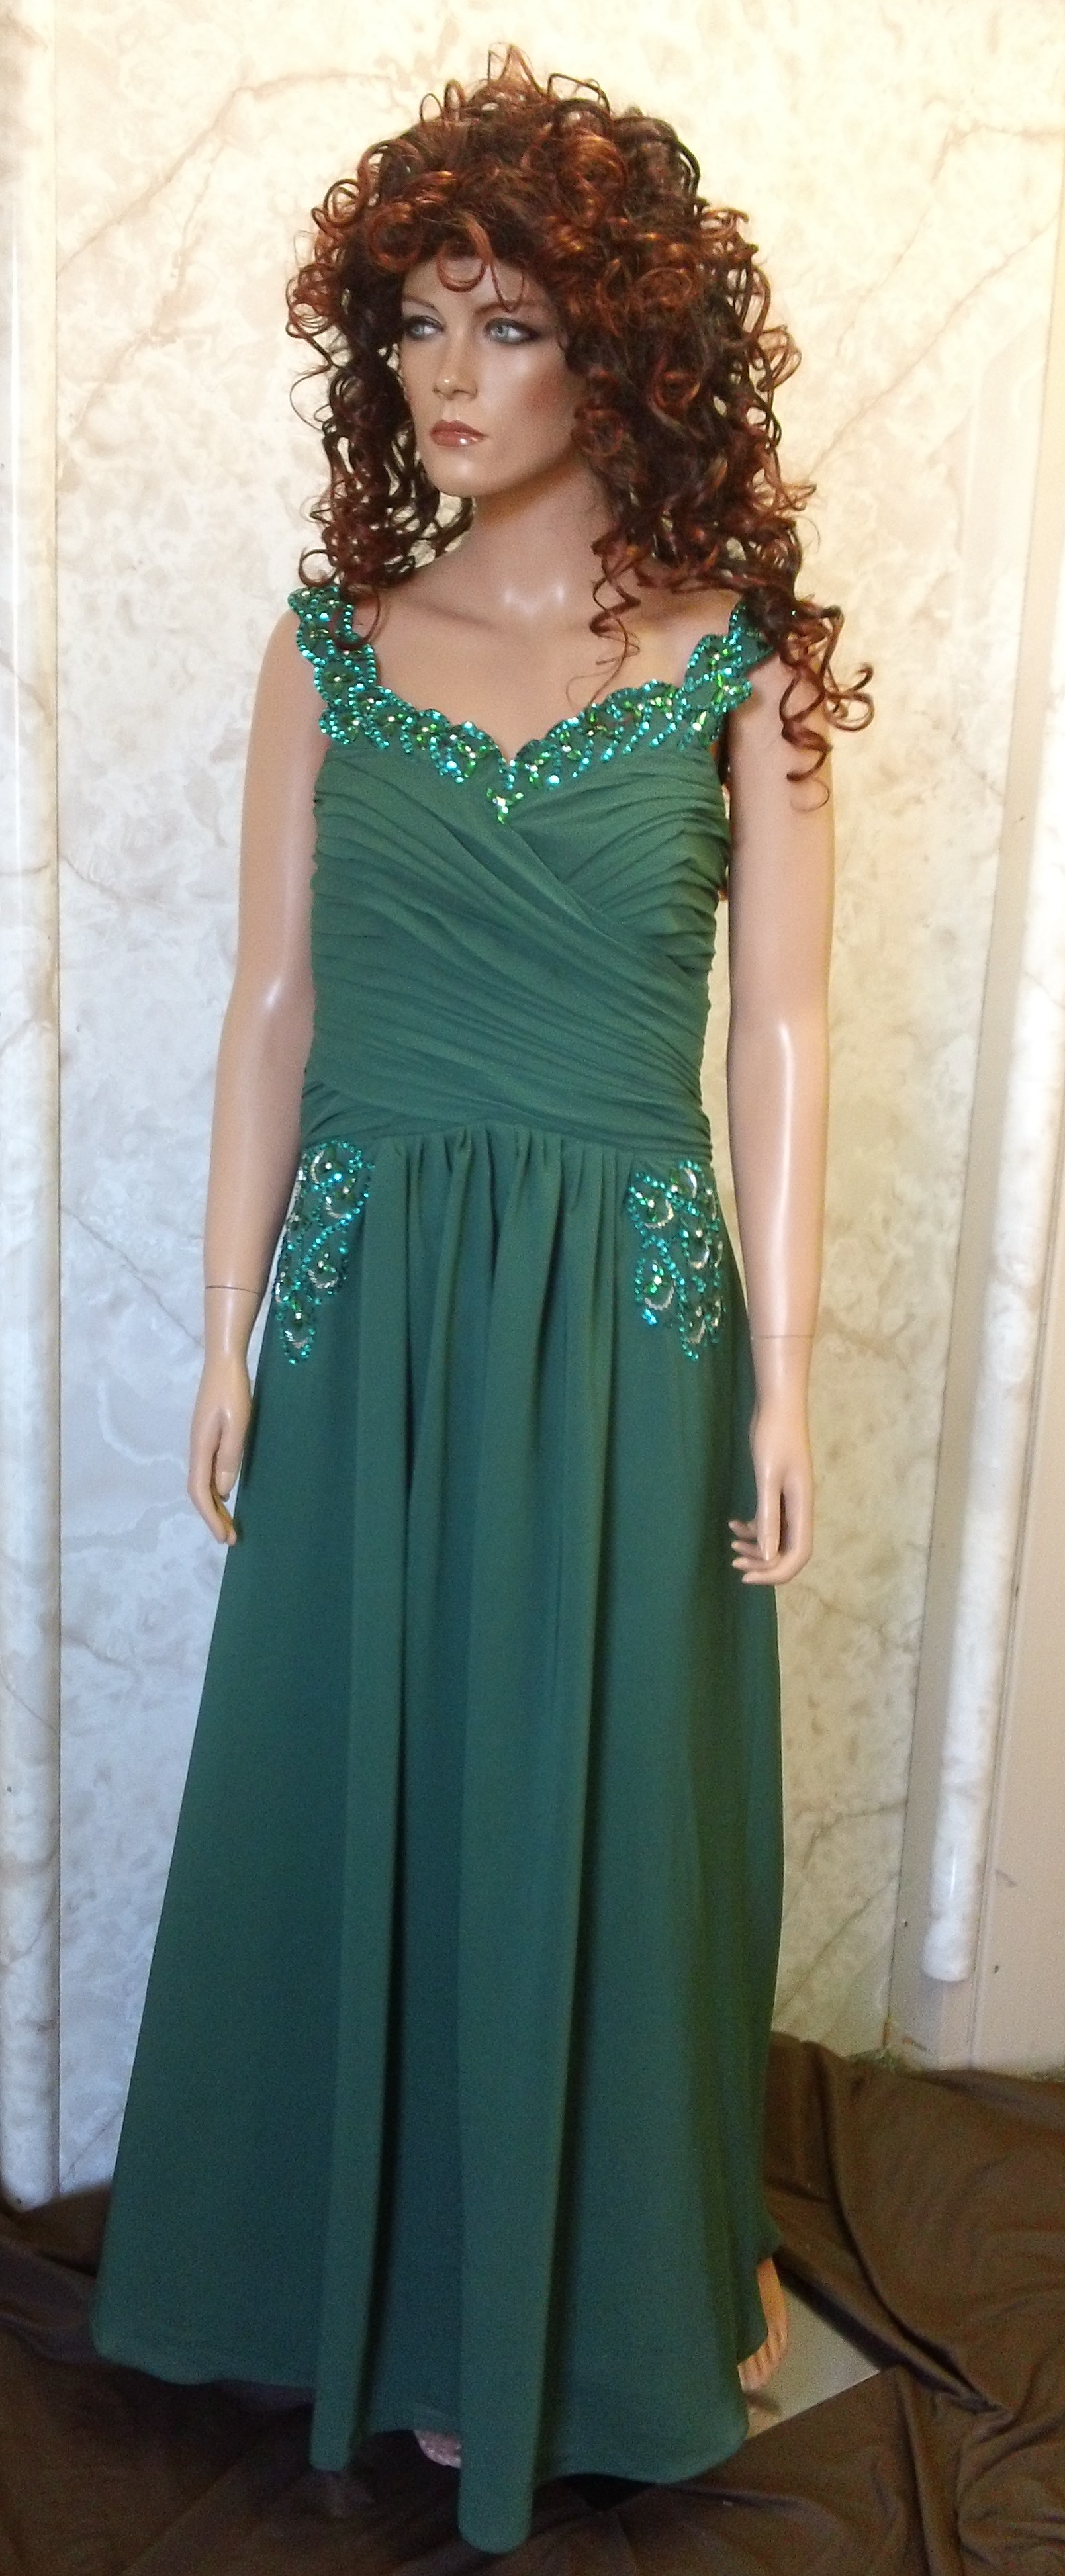 Hunter green chiffon bridesmaid dress